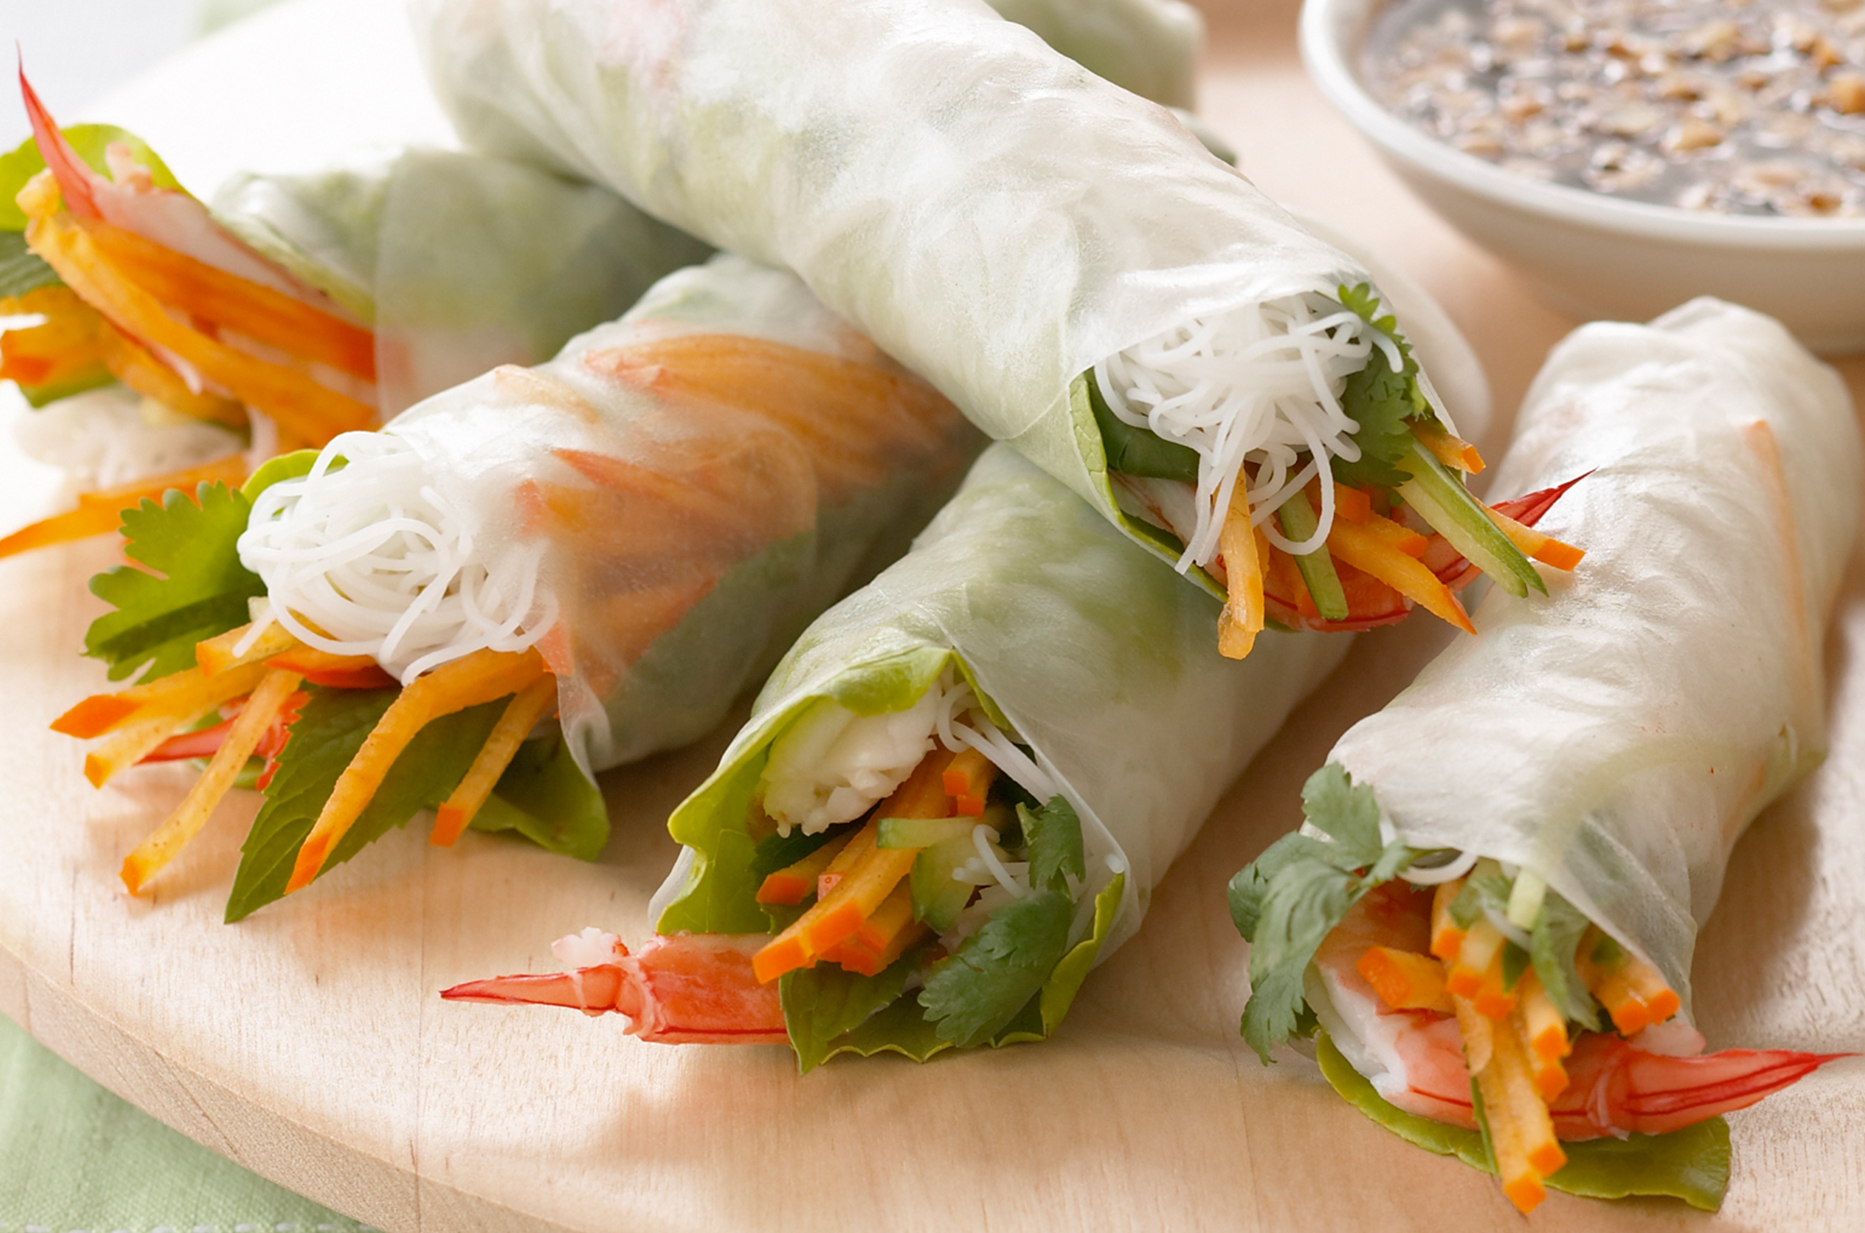 A wooden platter of rice paper rolls filled with persimon, prawns and herbs with dipping sauce